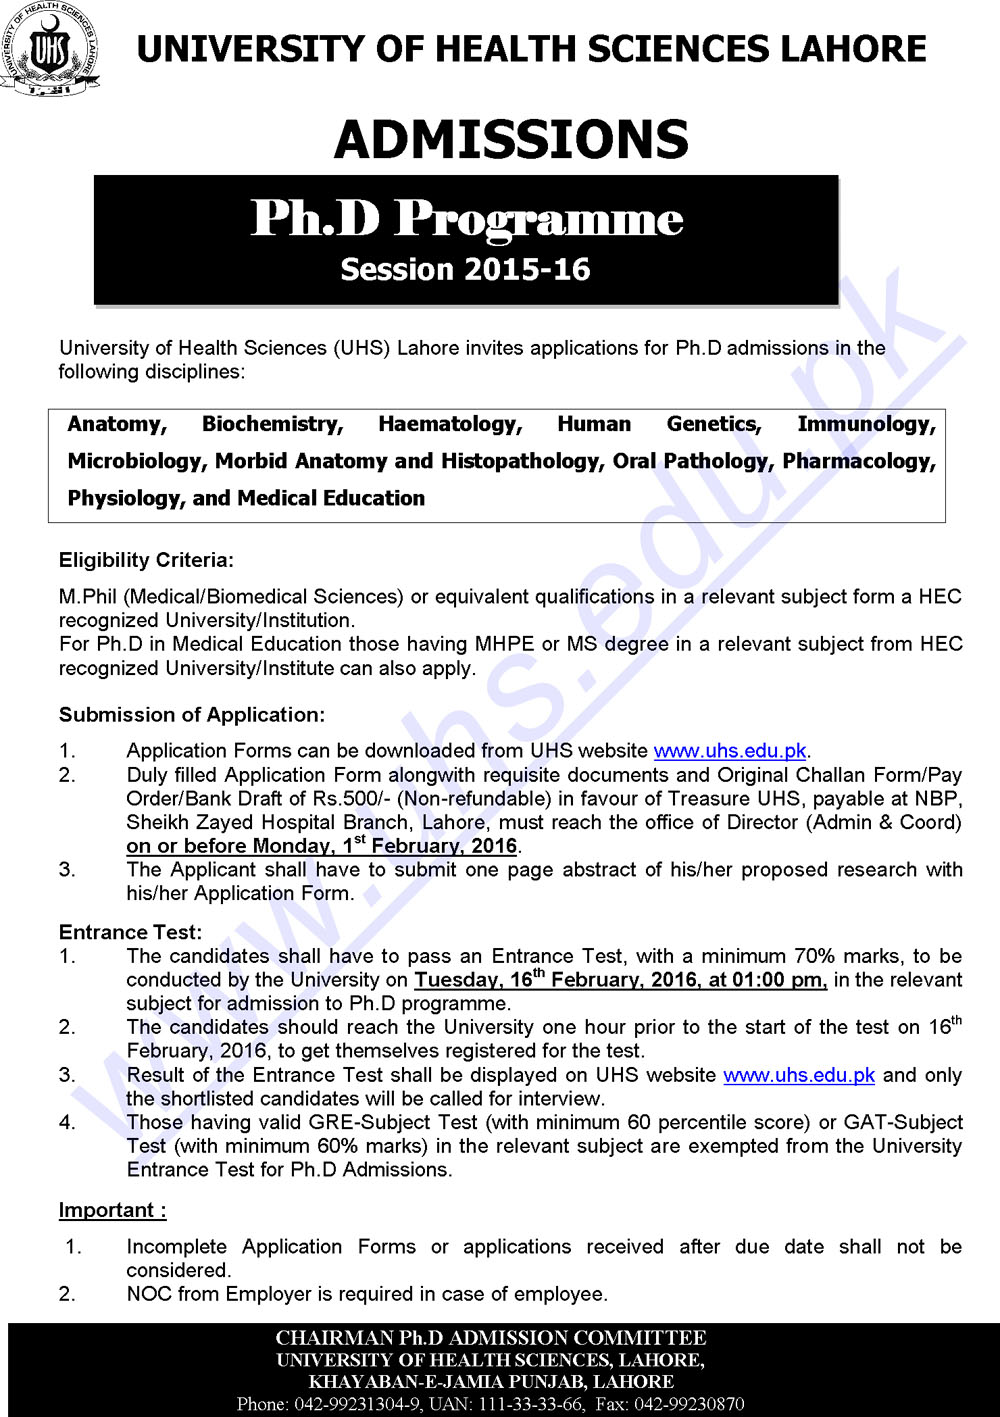 University Of Health Sciences Lahore PHD programs